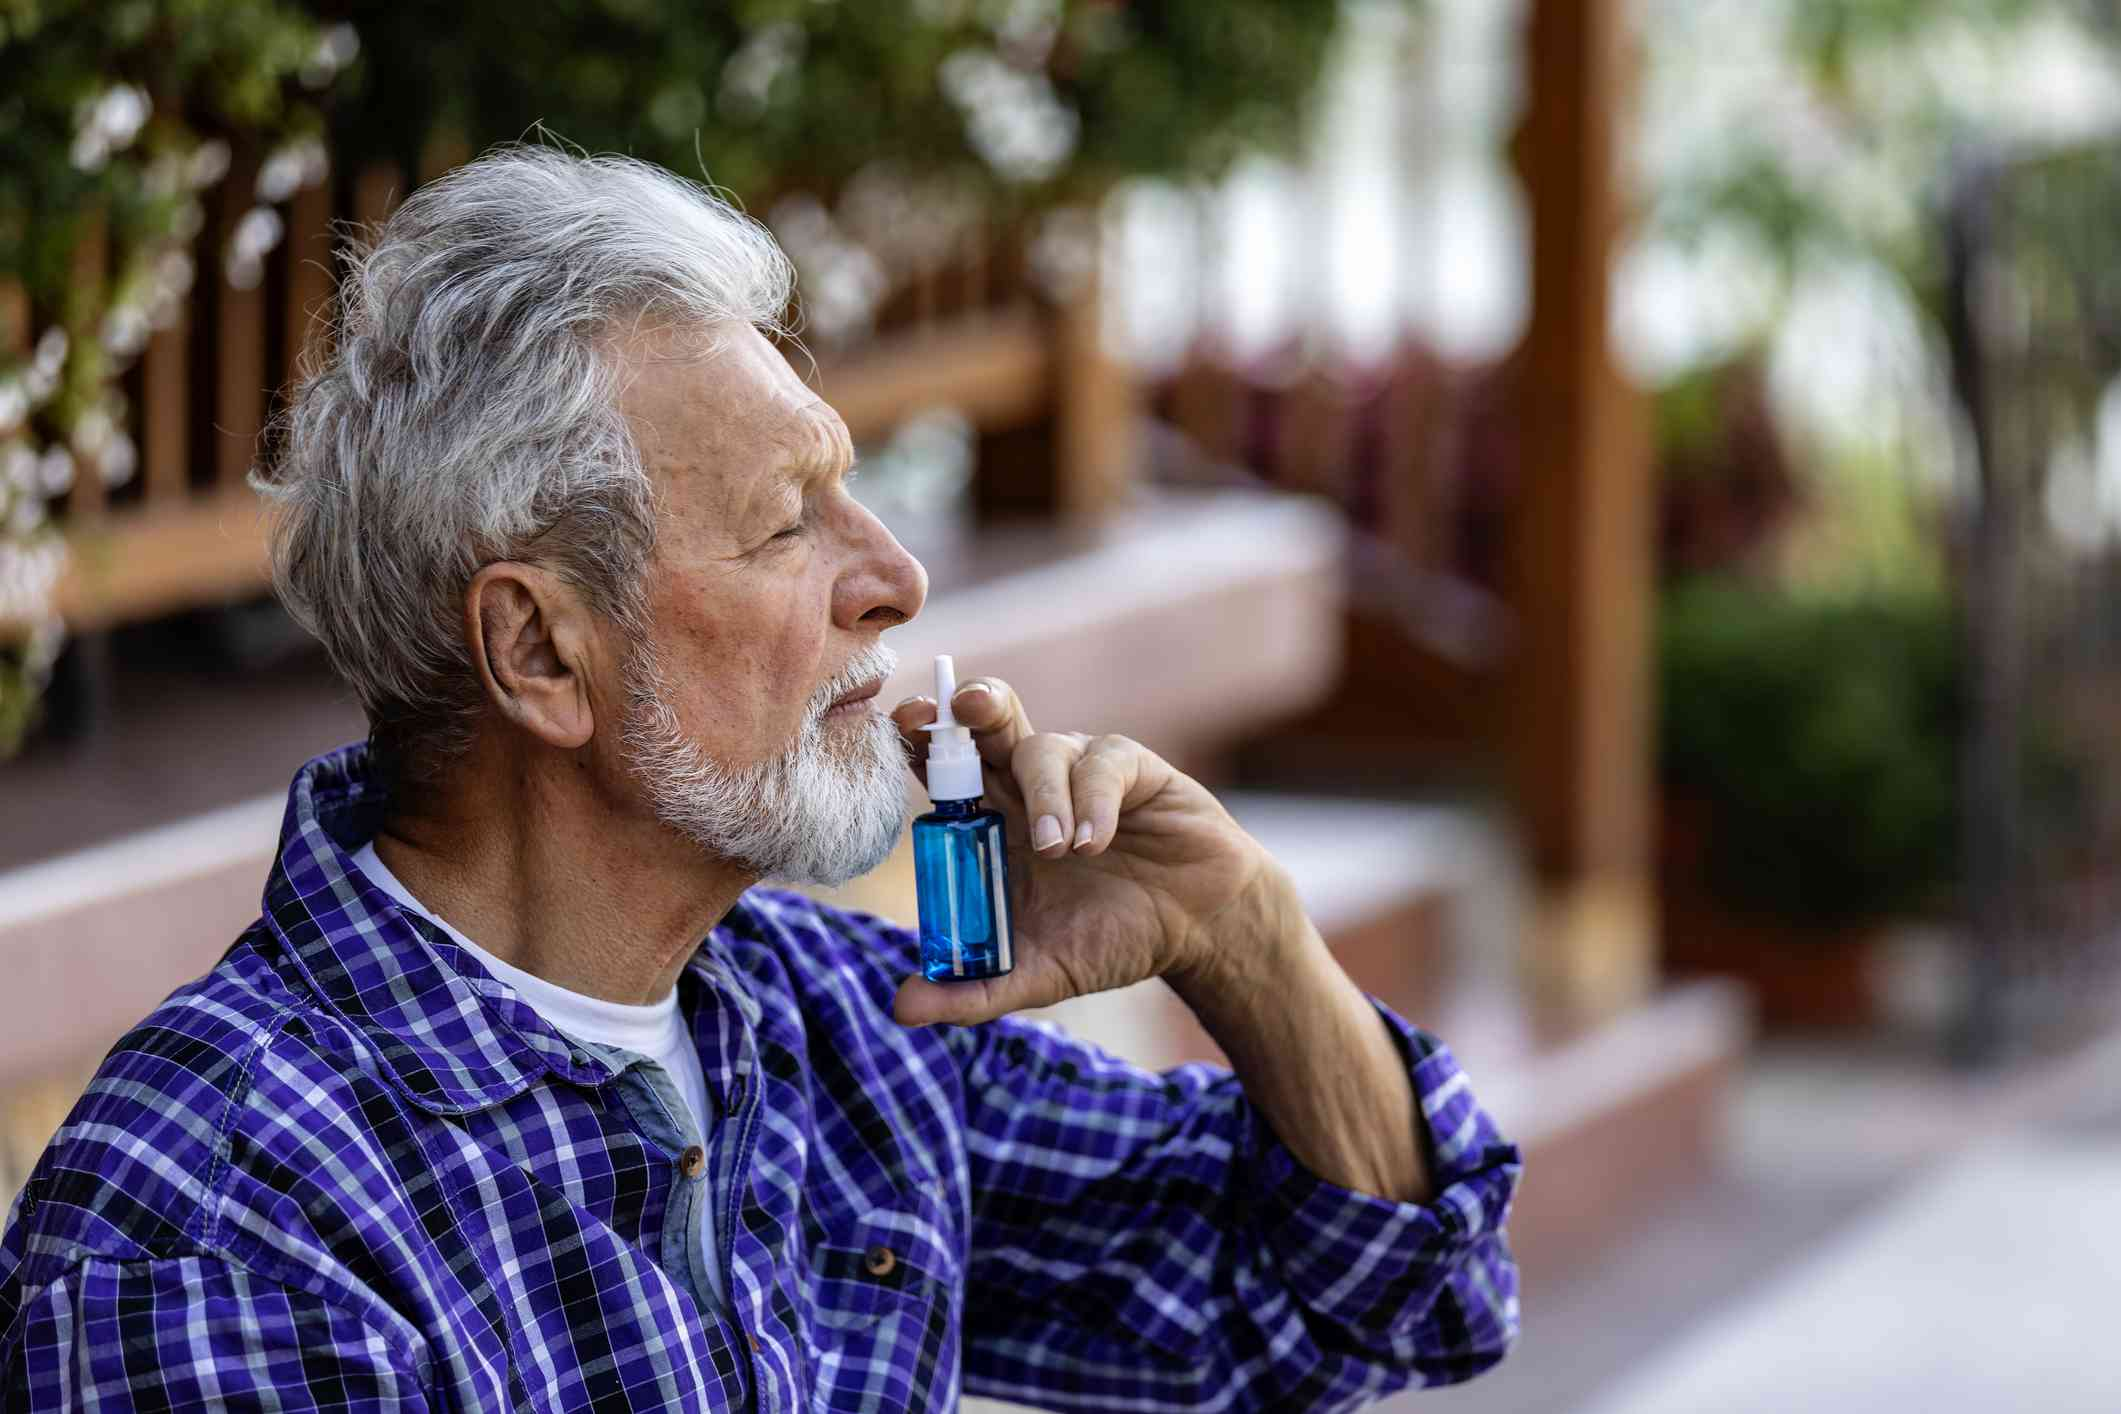 Senior Man dripping nasal drops. Portrait of senior man with a nasal spray, using nose drops, concept of treatment for allergies or the common cold